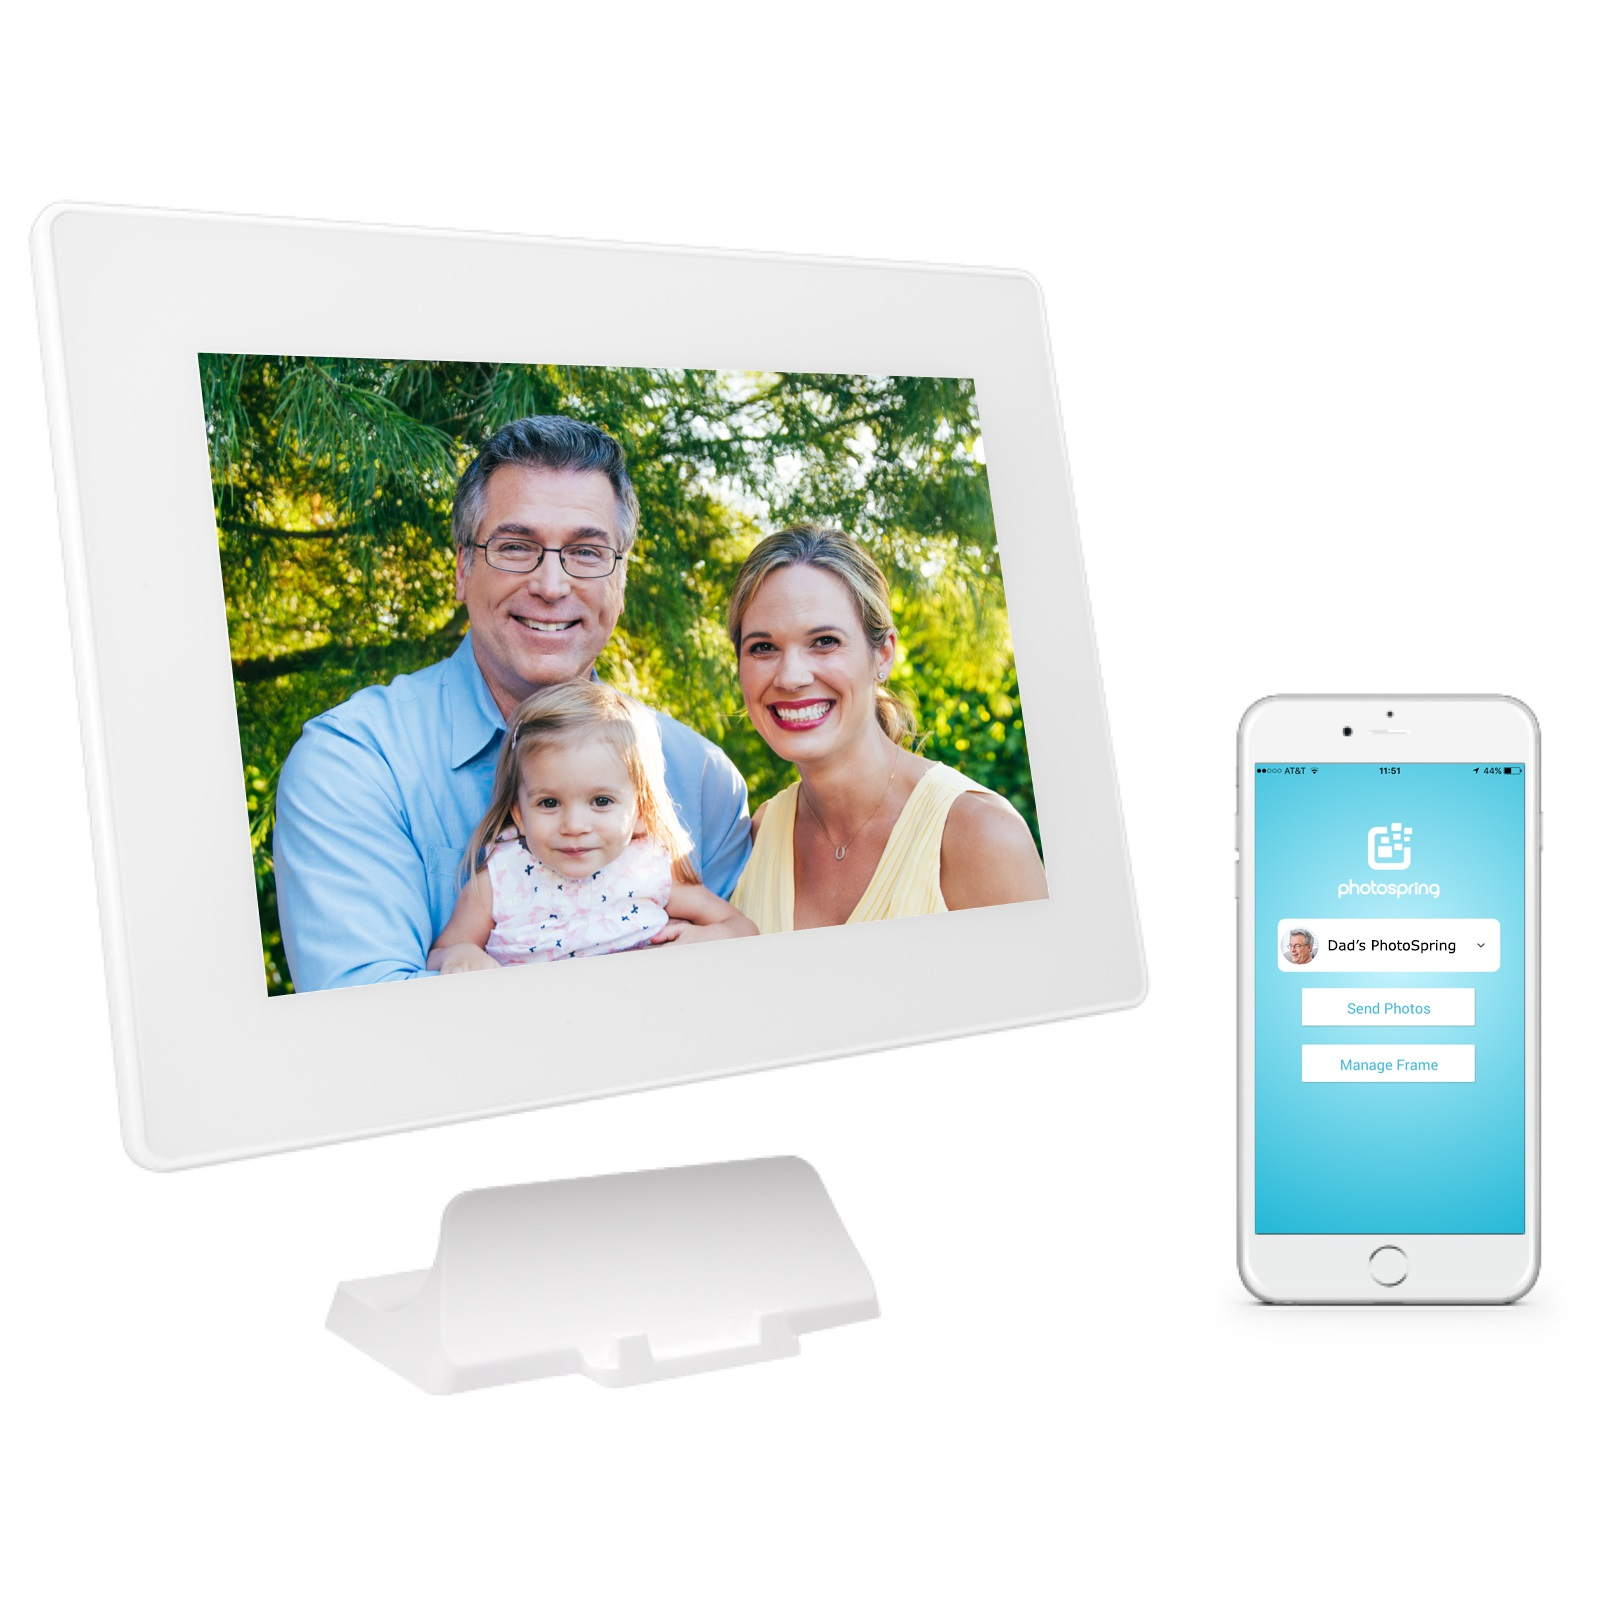 PhotoSpring (16GB) 10in WiFi Digital Photo Frame + Album for Videos & Pictures, Touch Screen, Battery, iPhone & Android App, HD Screen, White - 15,000 photo capacity